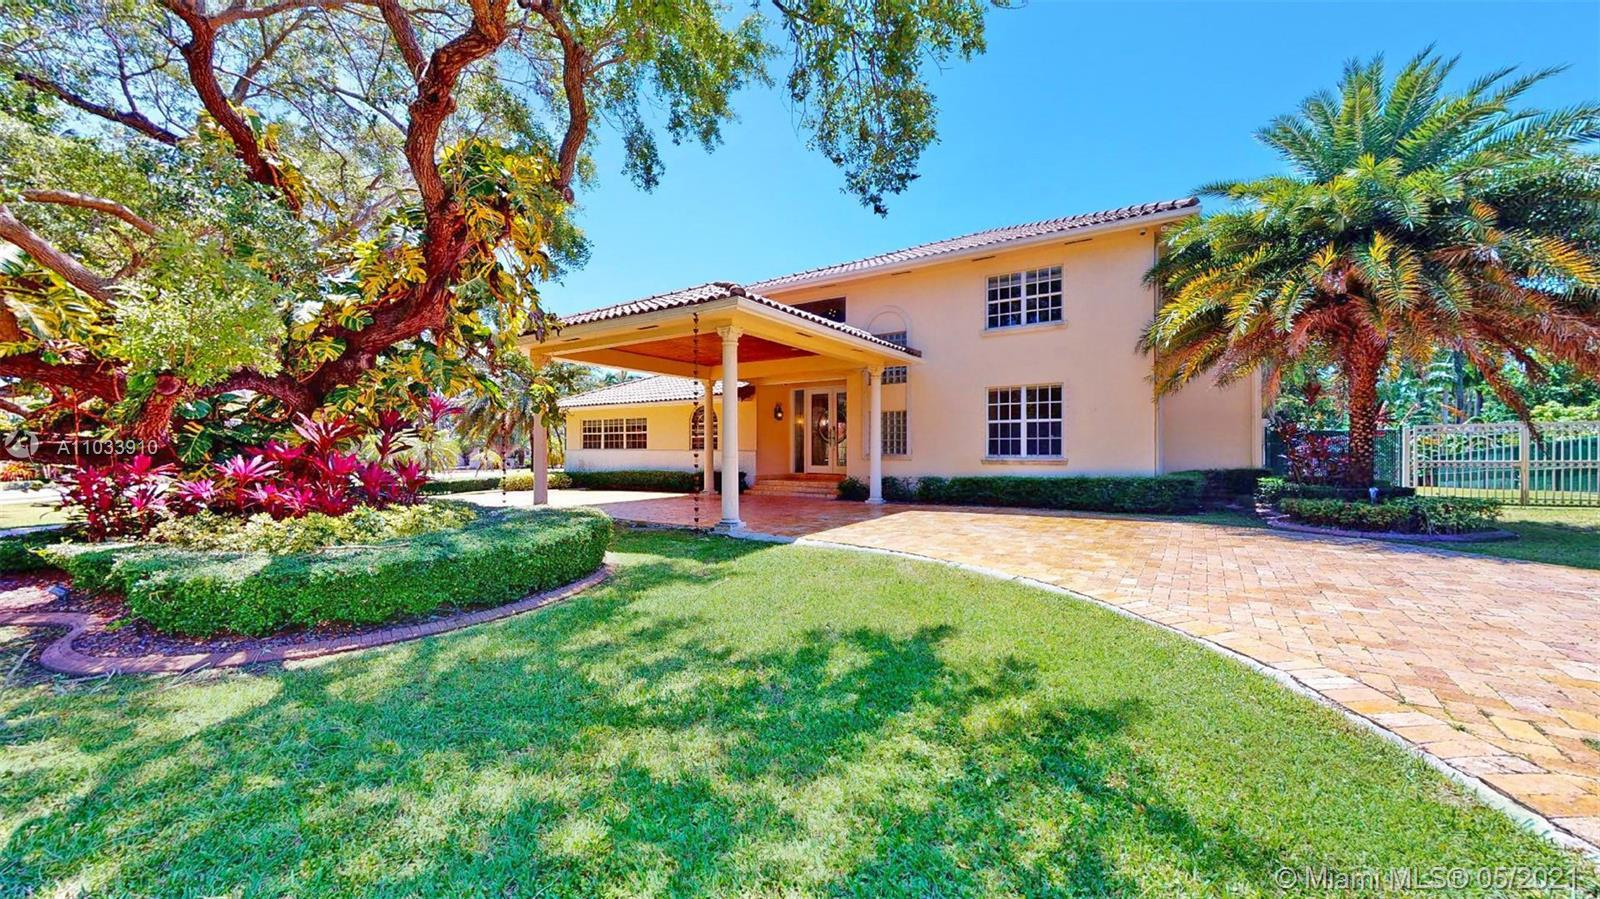 SITUATED IN EXCLUSIVE GABLES BY THE SEA COMMUNITY, THIS CORNER LOT SANCTUARY OFFERS 7 BEDROOMS & 6.5